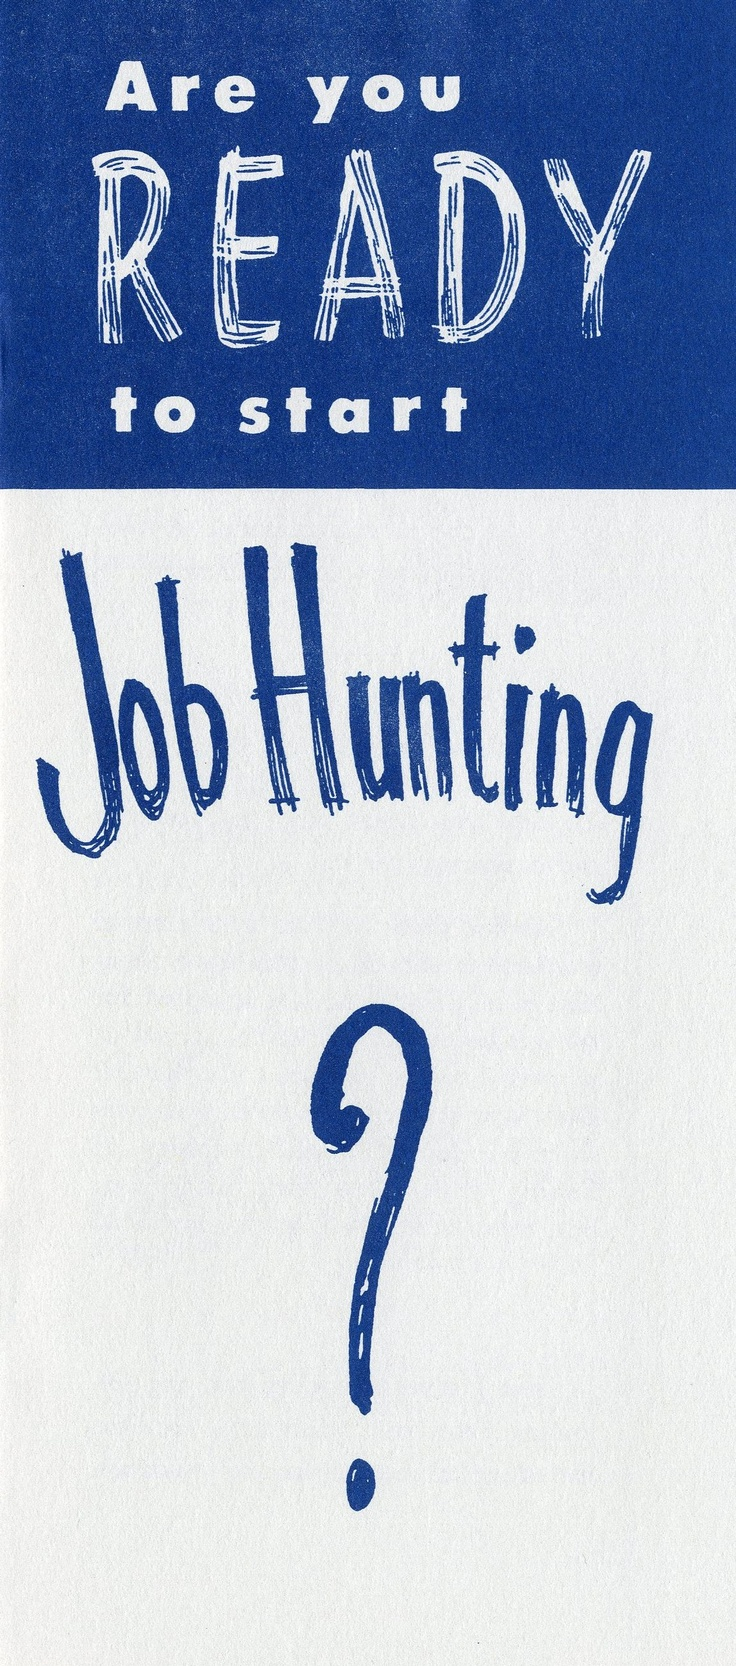 job hunting? We can help you  Visit us at:  www.professional-cv-writer.co.uk Like us at: www.facebook.com/angliacvsolutions